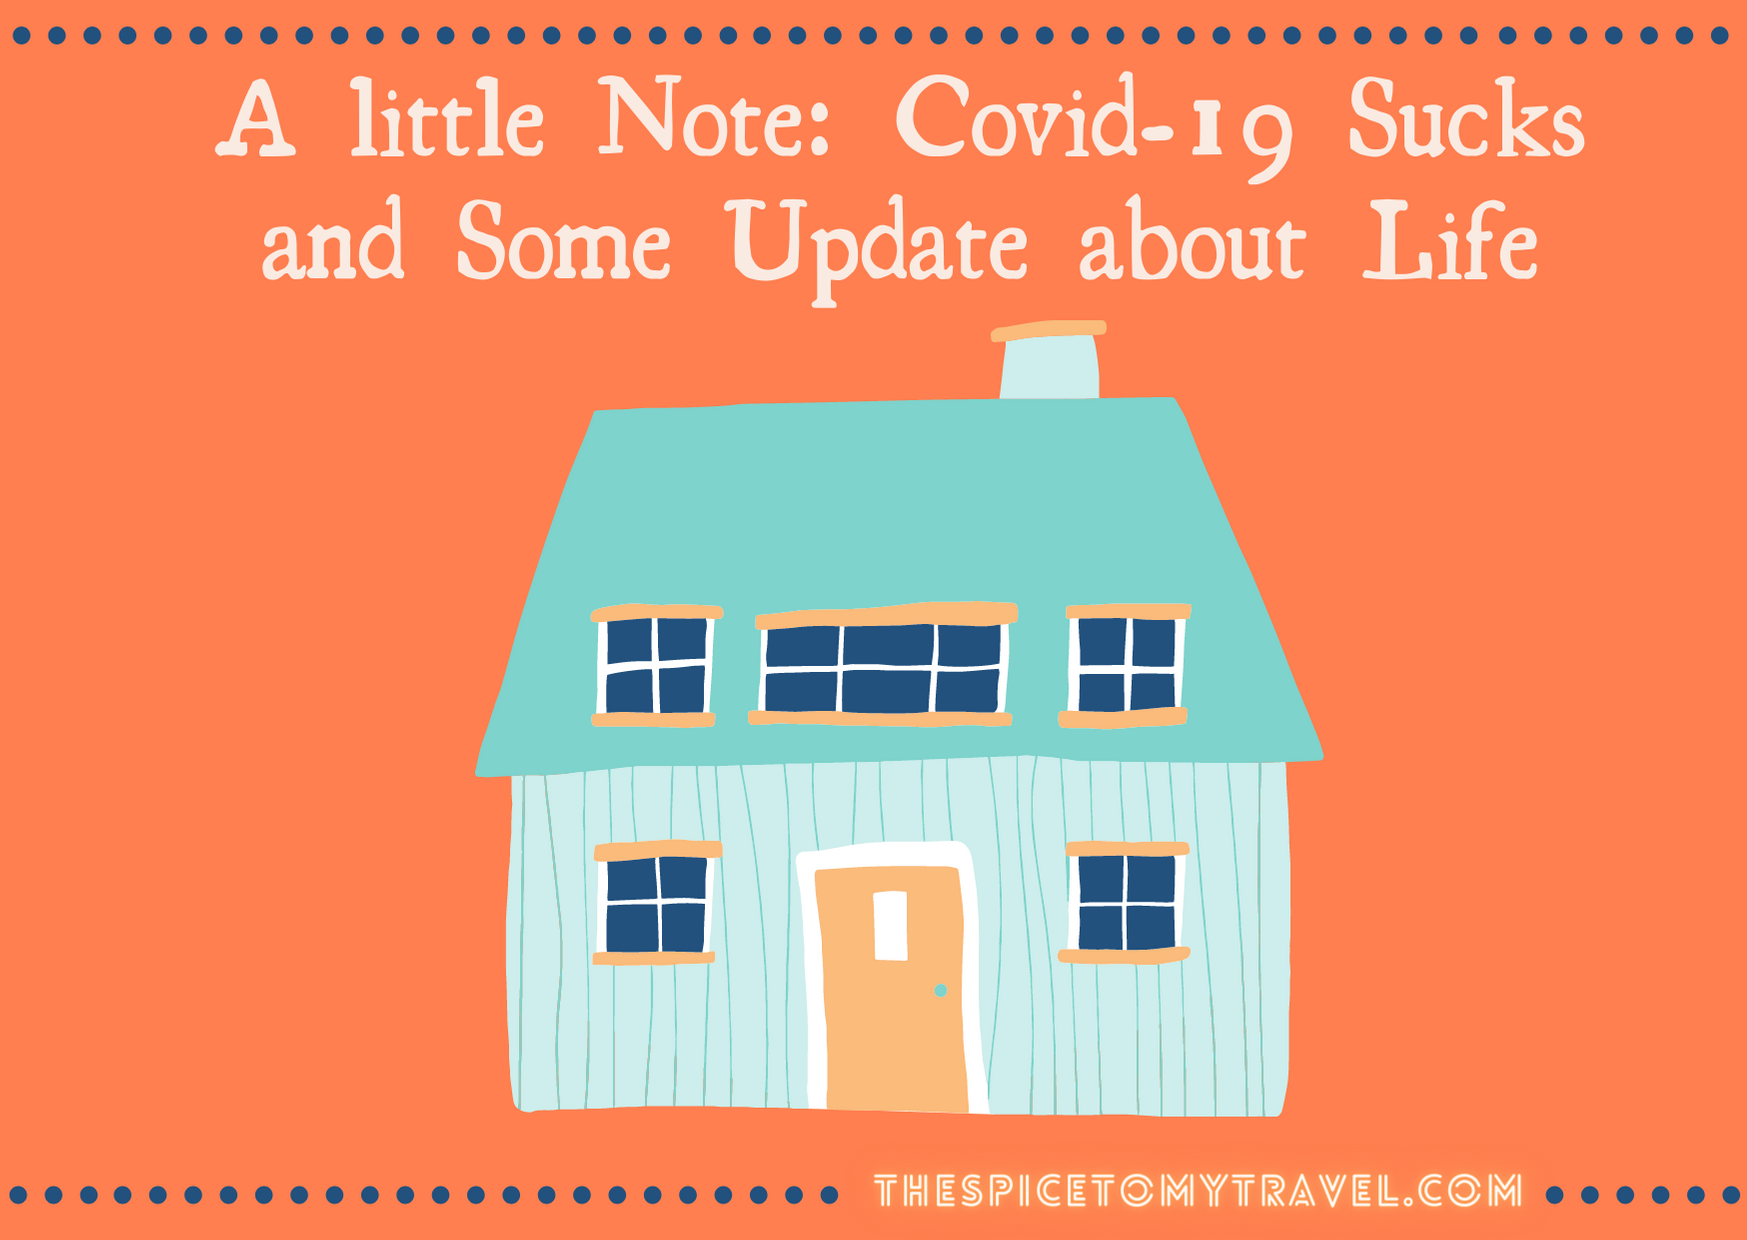 A little note: Covid-19 sucks, and some update about life.